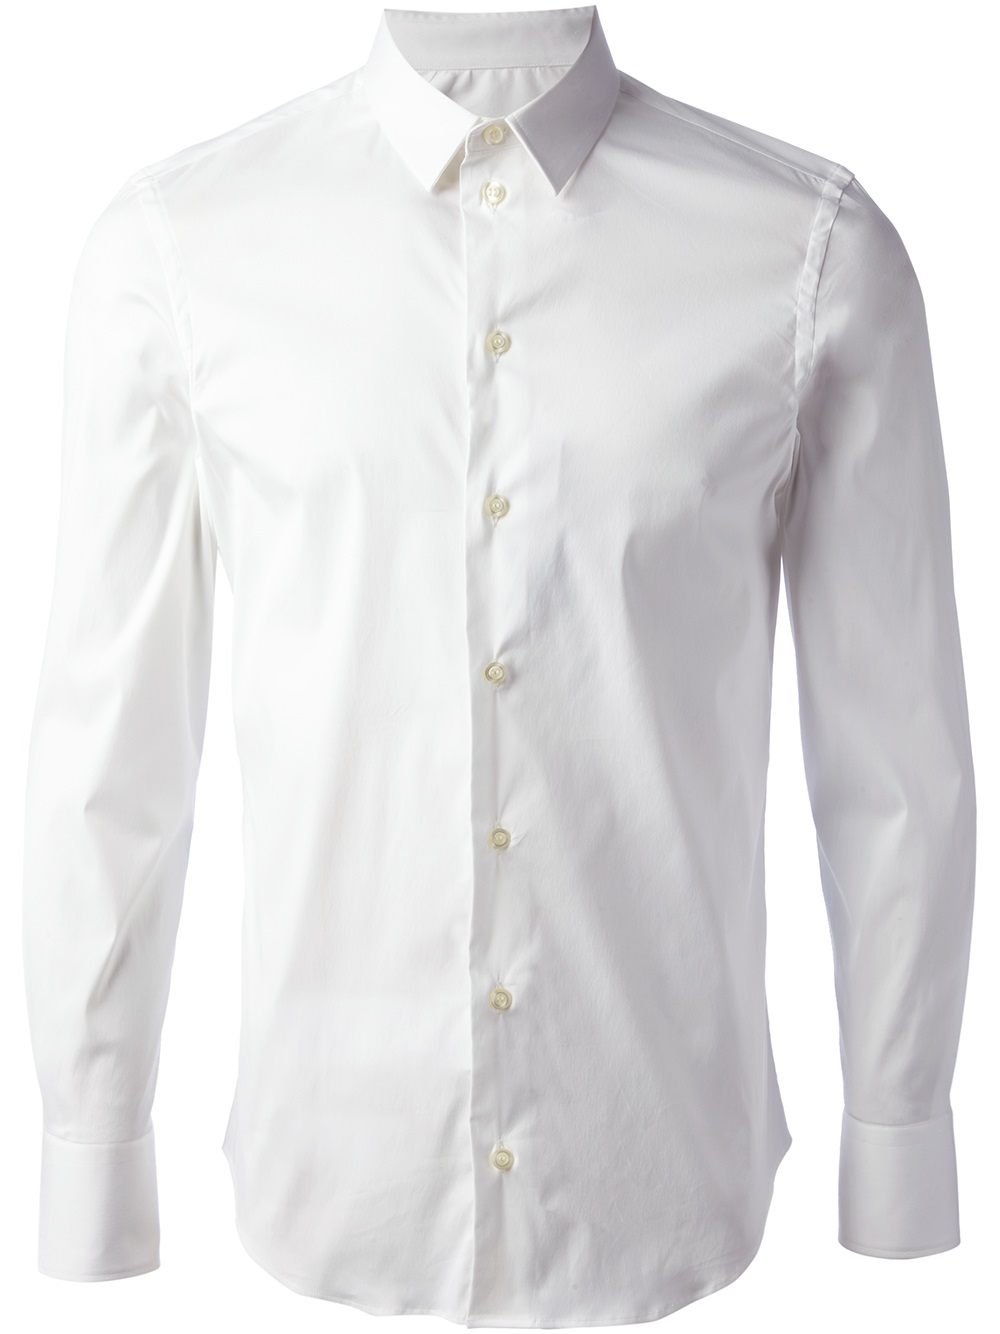 White collar shirt men artee shirt for Mens collared t shirts